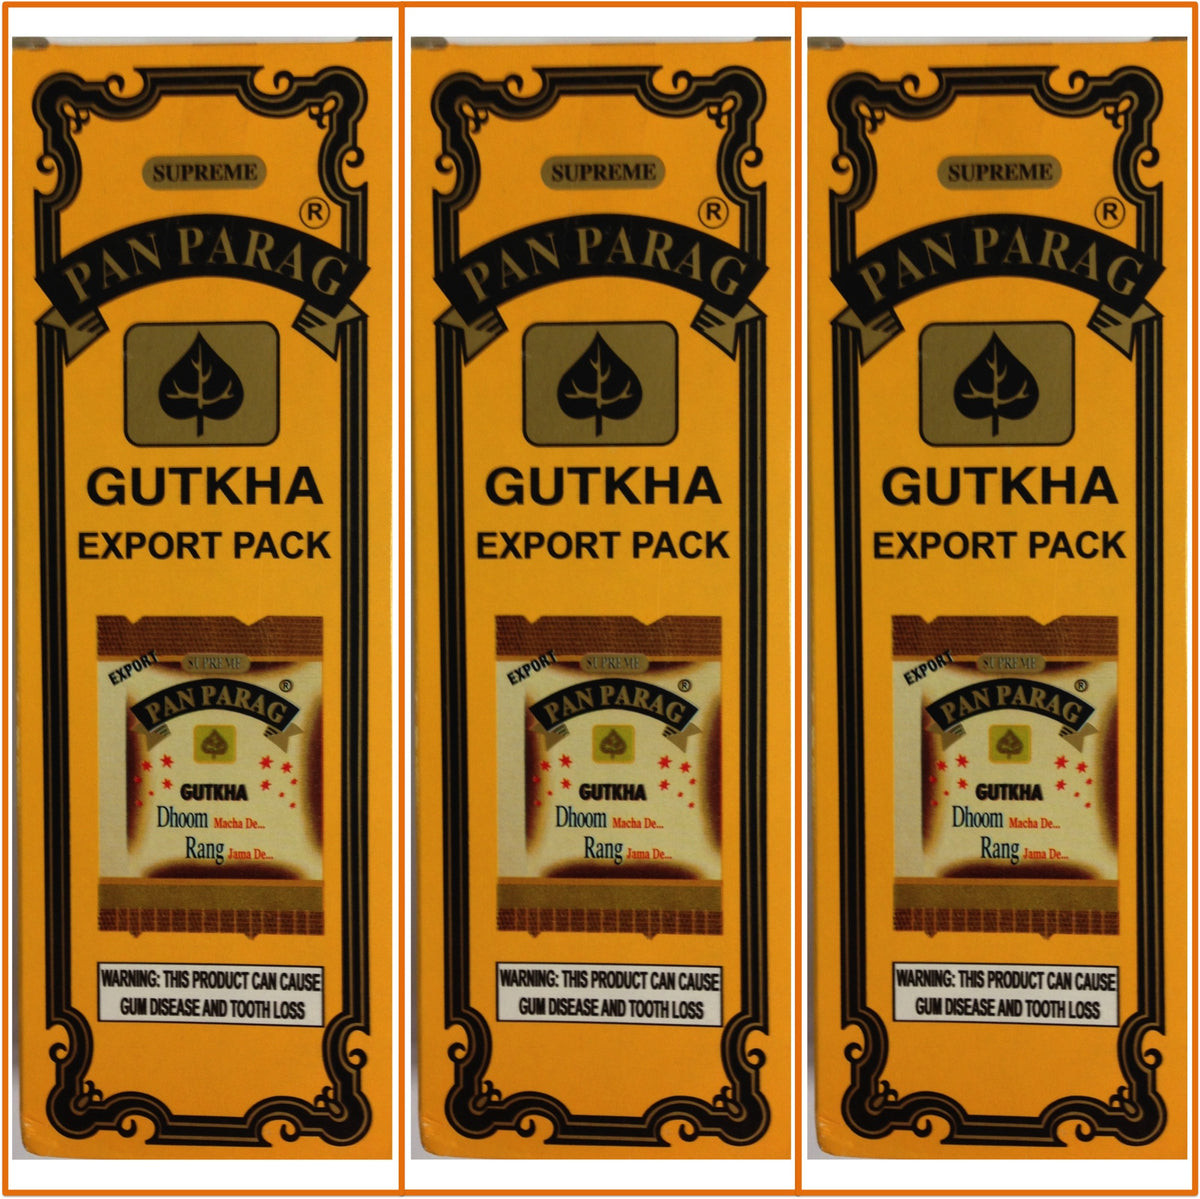 3 Boxes. Pan Parag Gutkha. 27x18g Each. Export Quality!